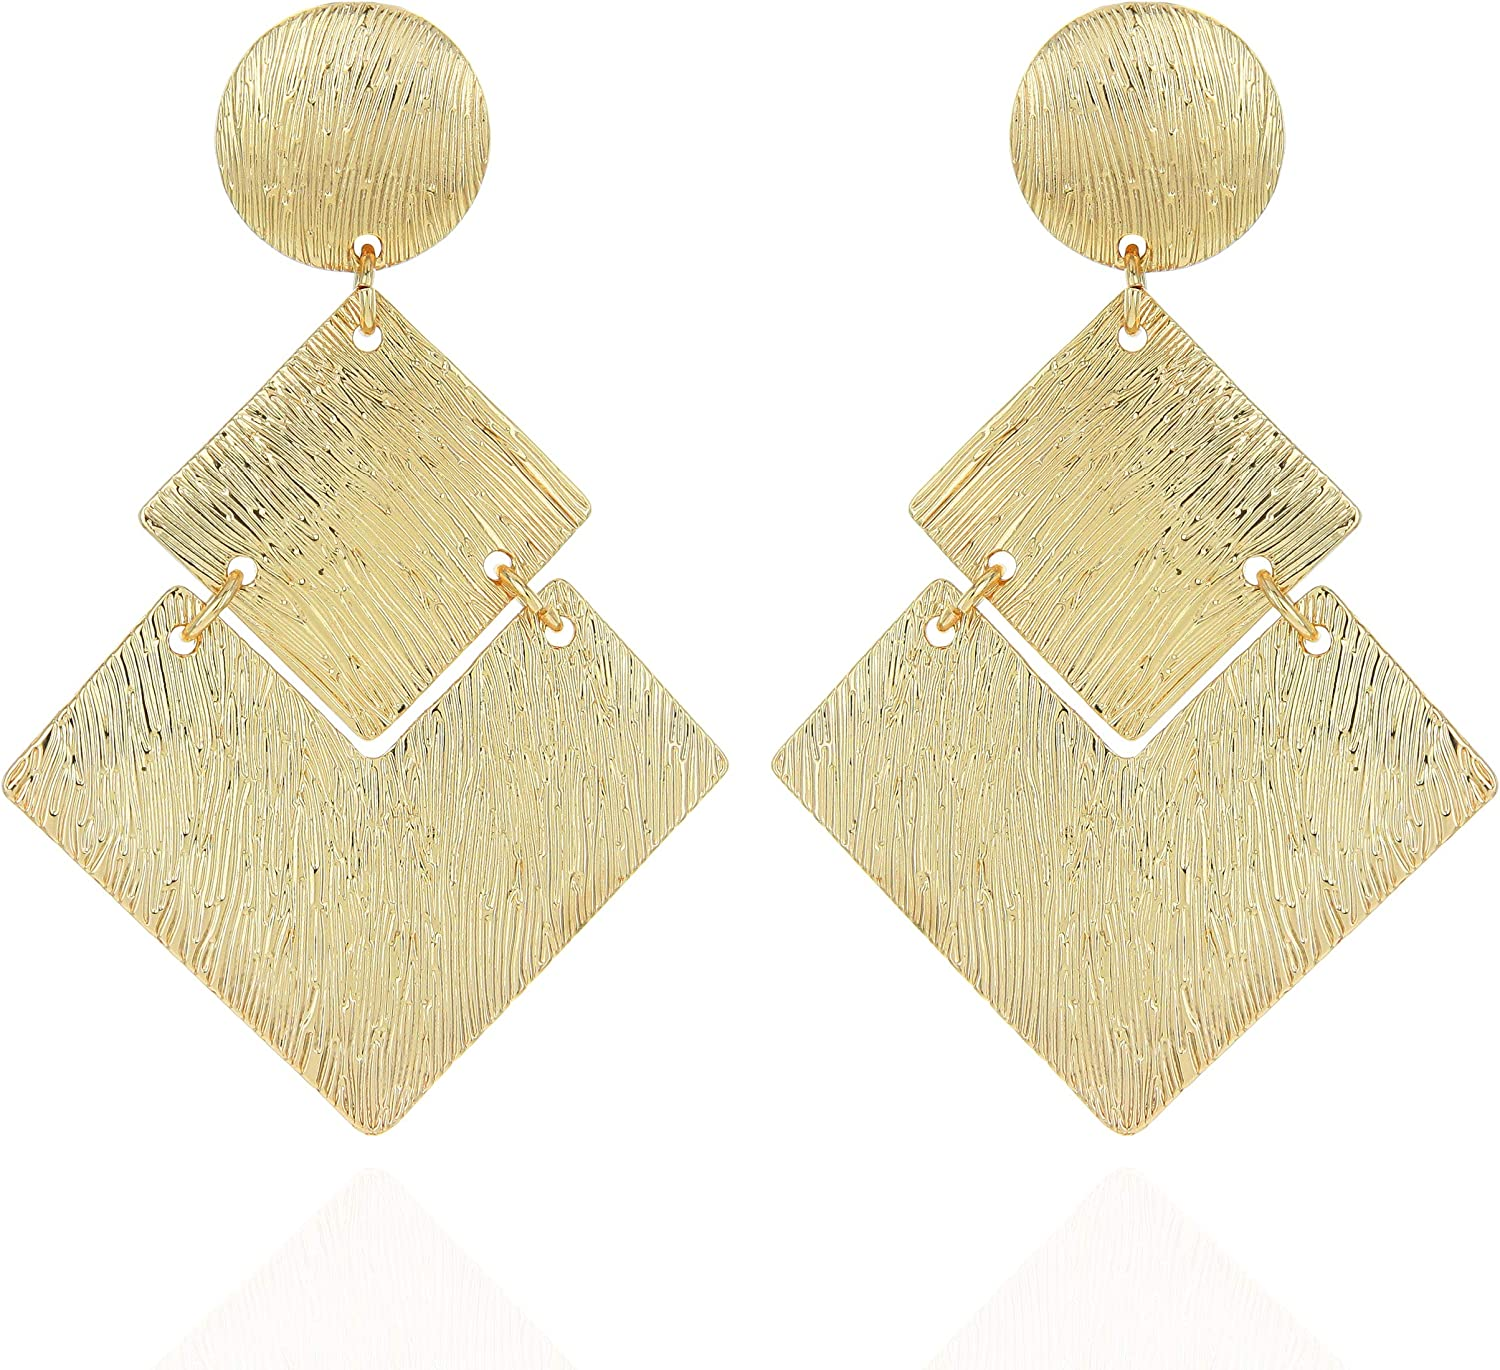 SP SOPHIA COLLECTION Women's Edgy Geometric Etched 3 Tiered Plated Clip On Earrings